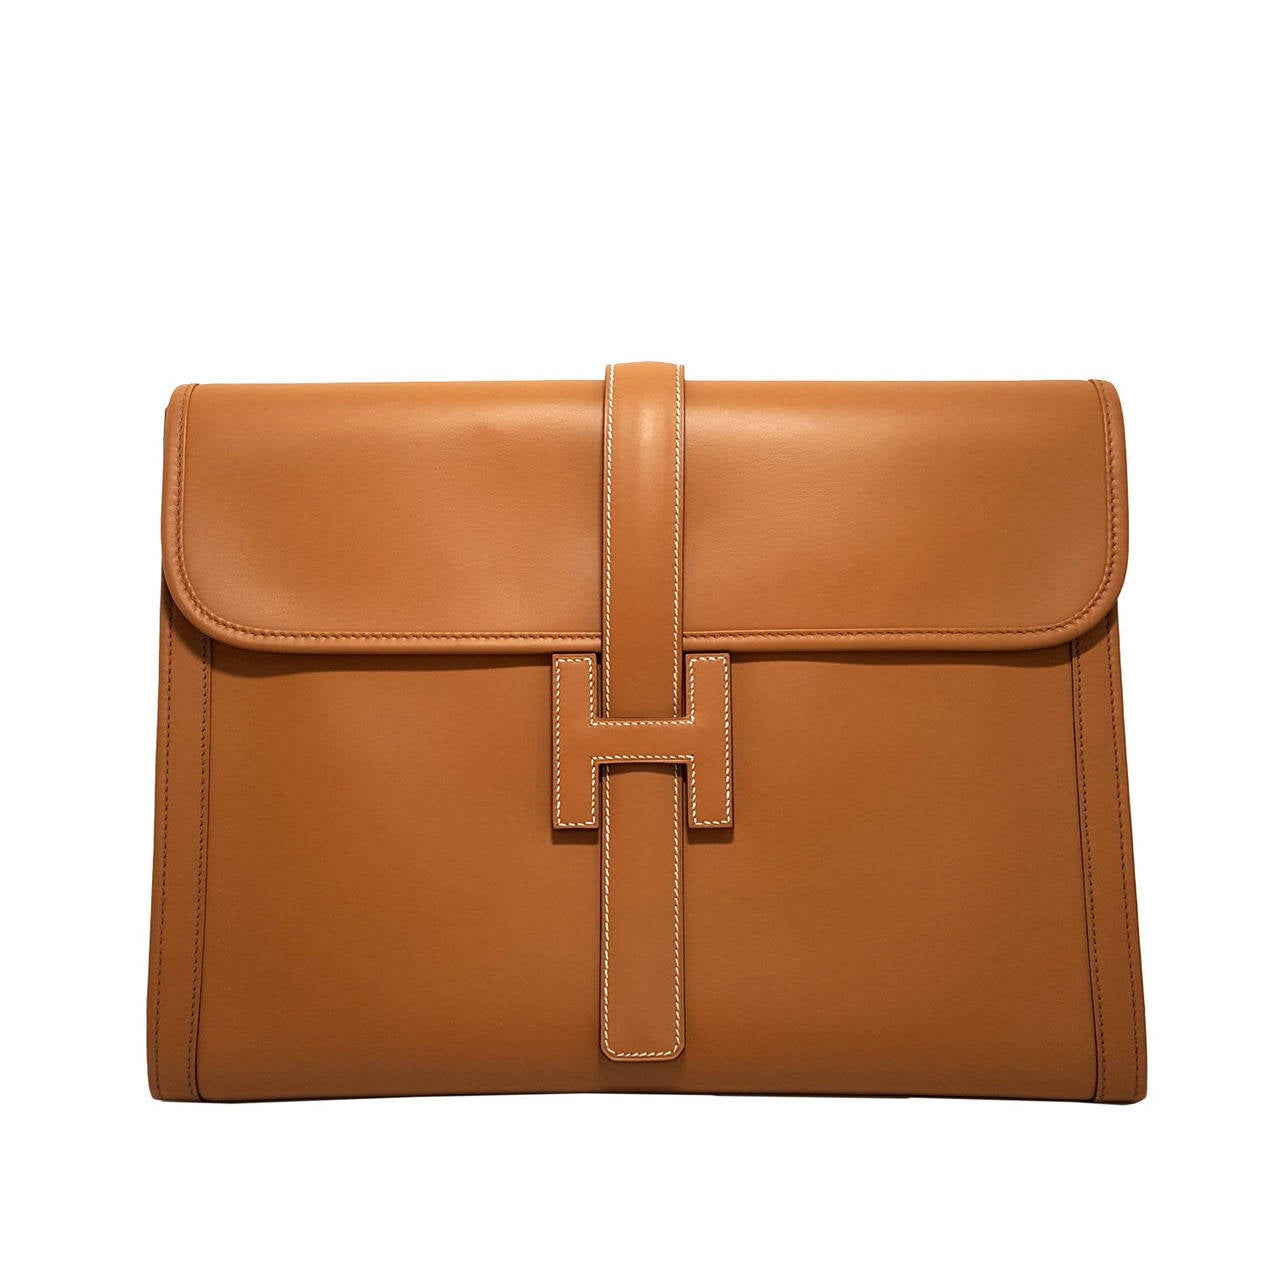 HERMES Large Golden Jige Clutch in perfect Condition. 1